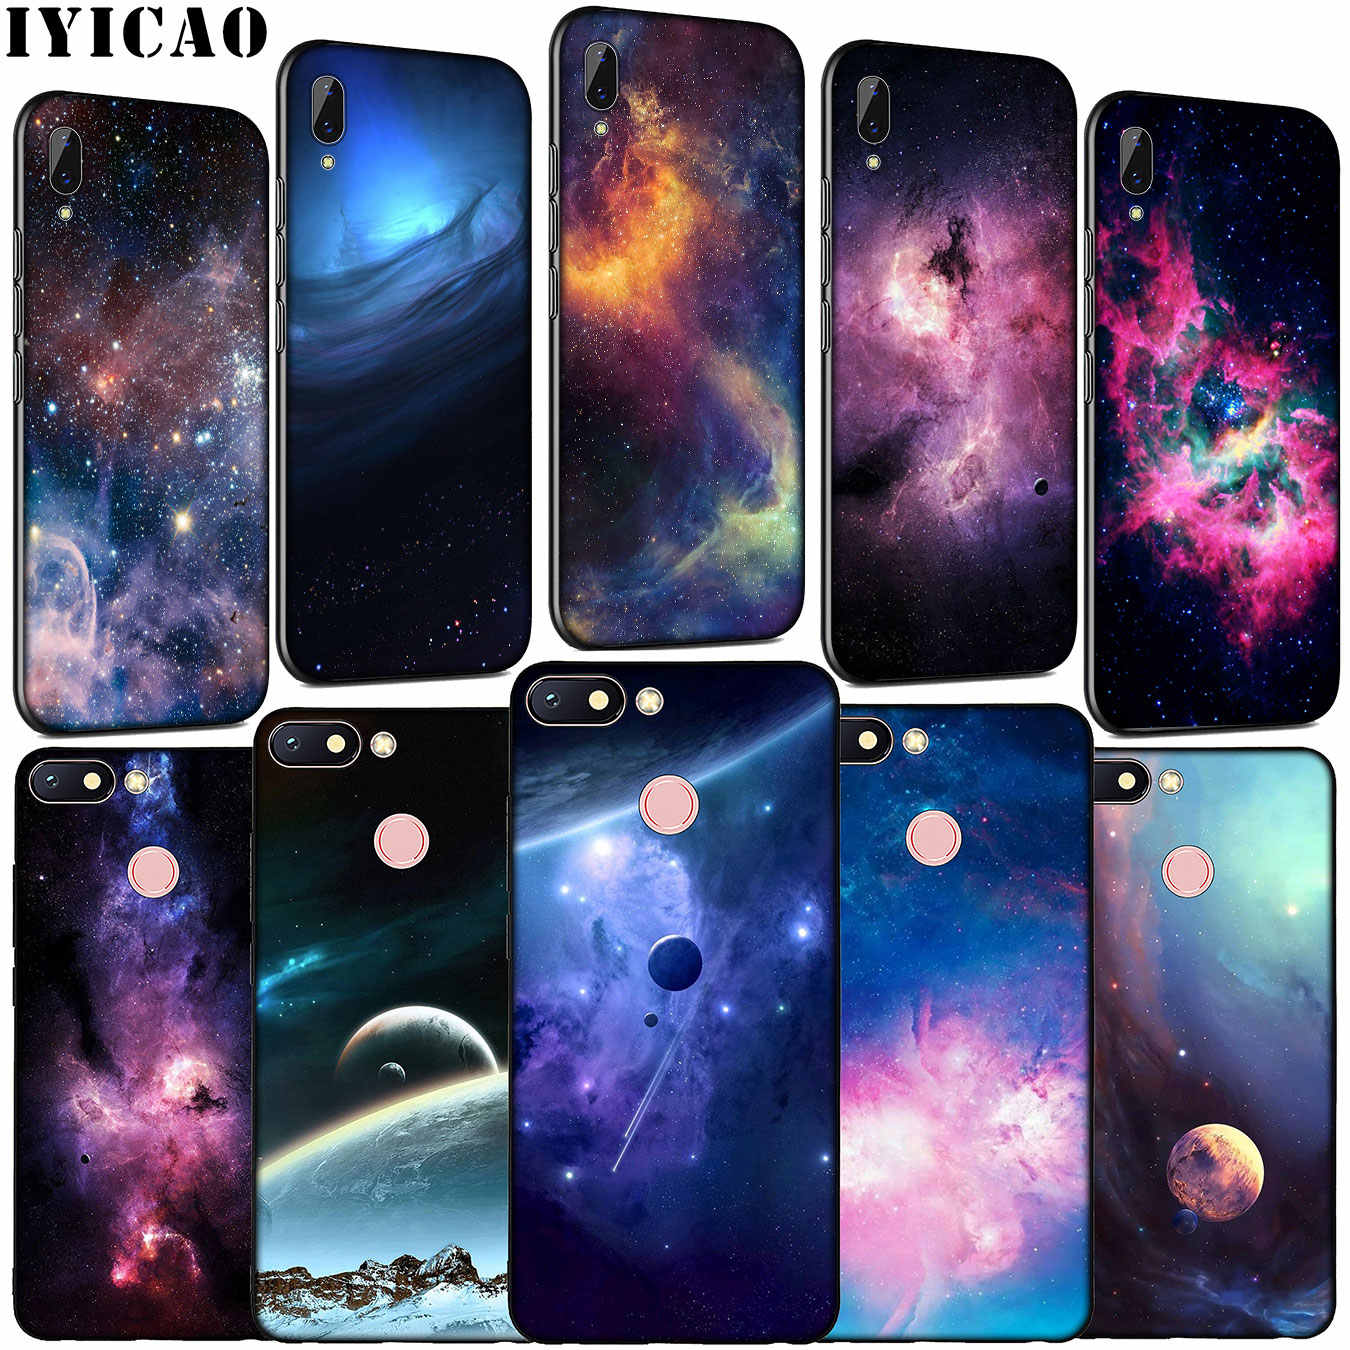 Iyicao Purple Space Star Soft Silicone Telefoon Case Voor Xiaomi Redmi Note 8 8T 8A 7 7A 6 6A 5 5A K30 K20 Pro Gaan S2 Cover